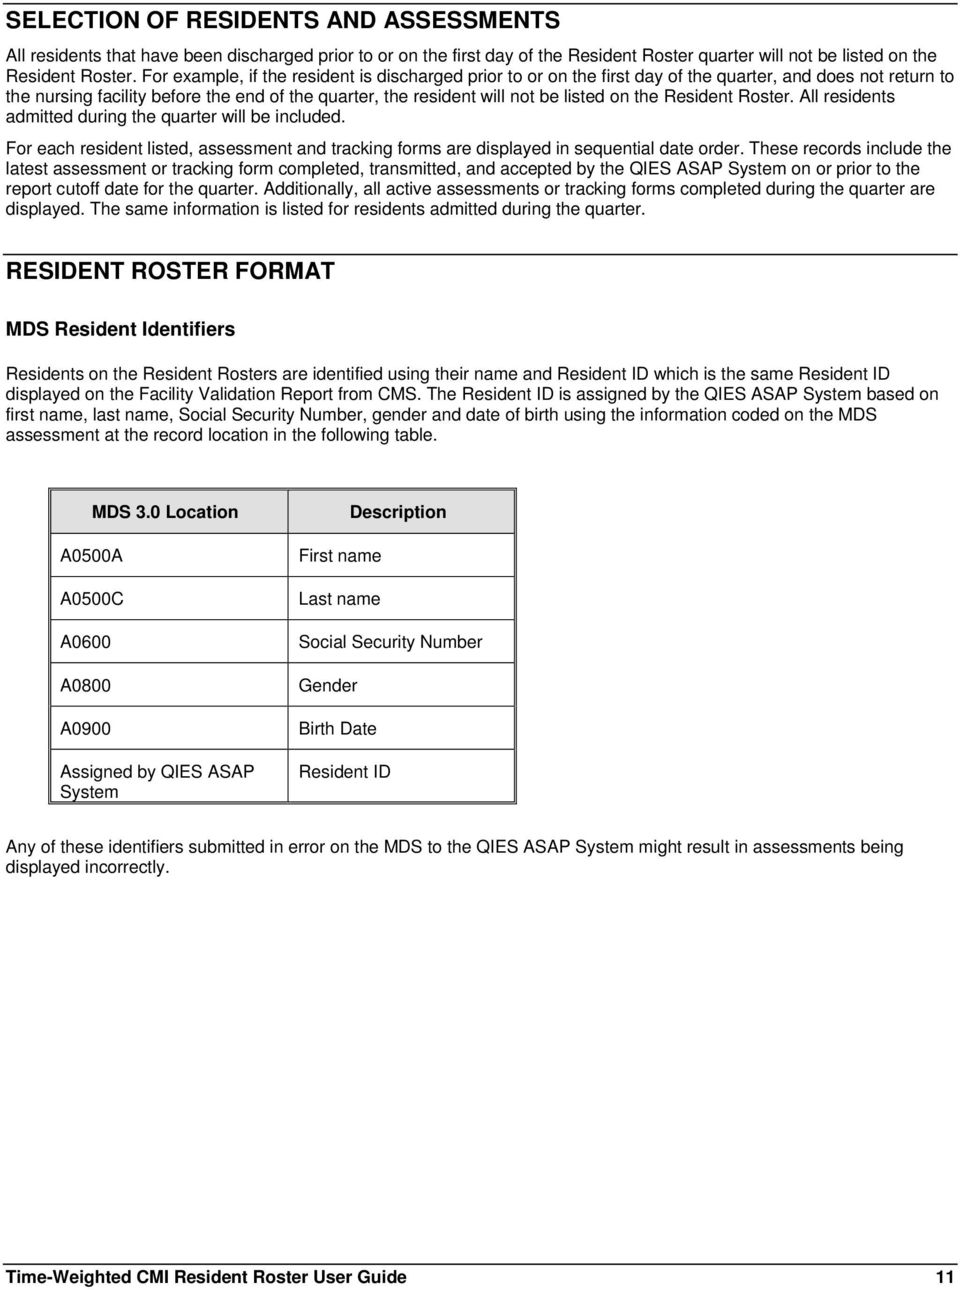 the Resident Roster. All residents admitted during the quarter will be included. For each resident listed, assessment and tracking forms are displayed in sequential date order.